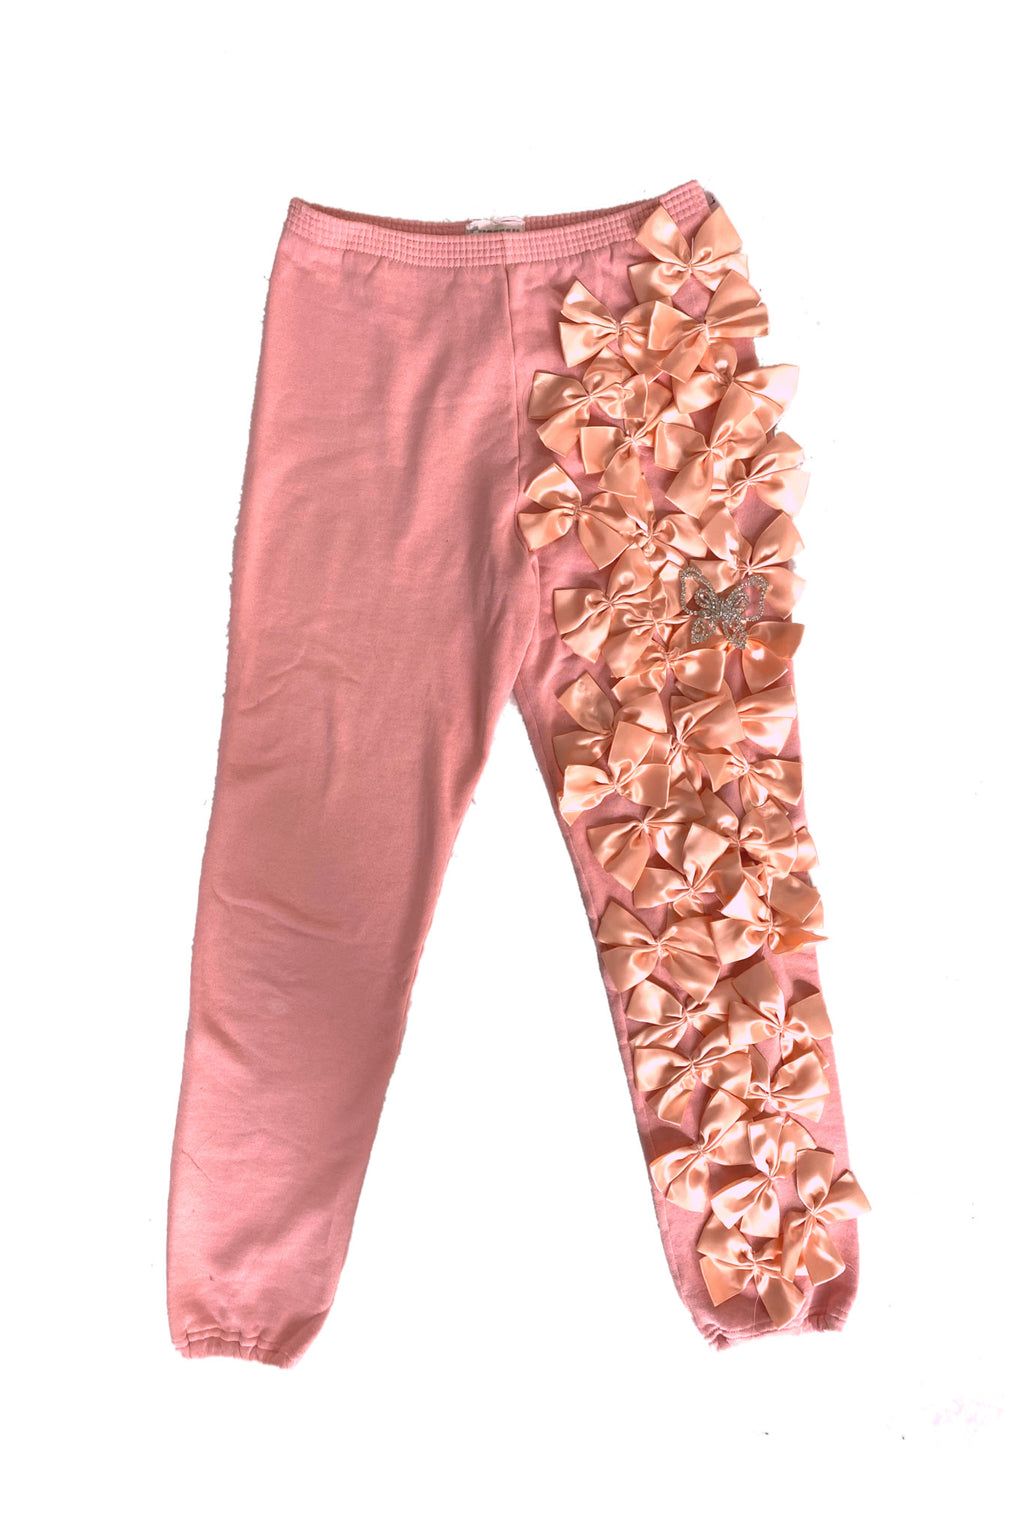 Pink bow sweats